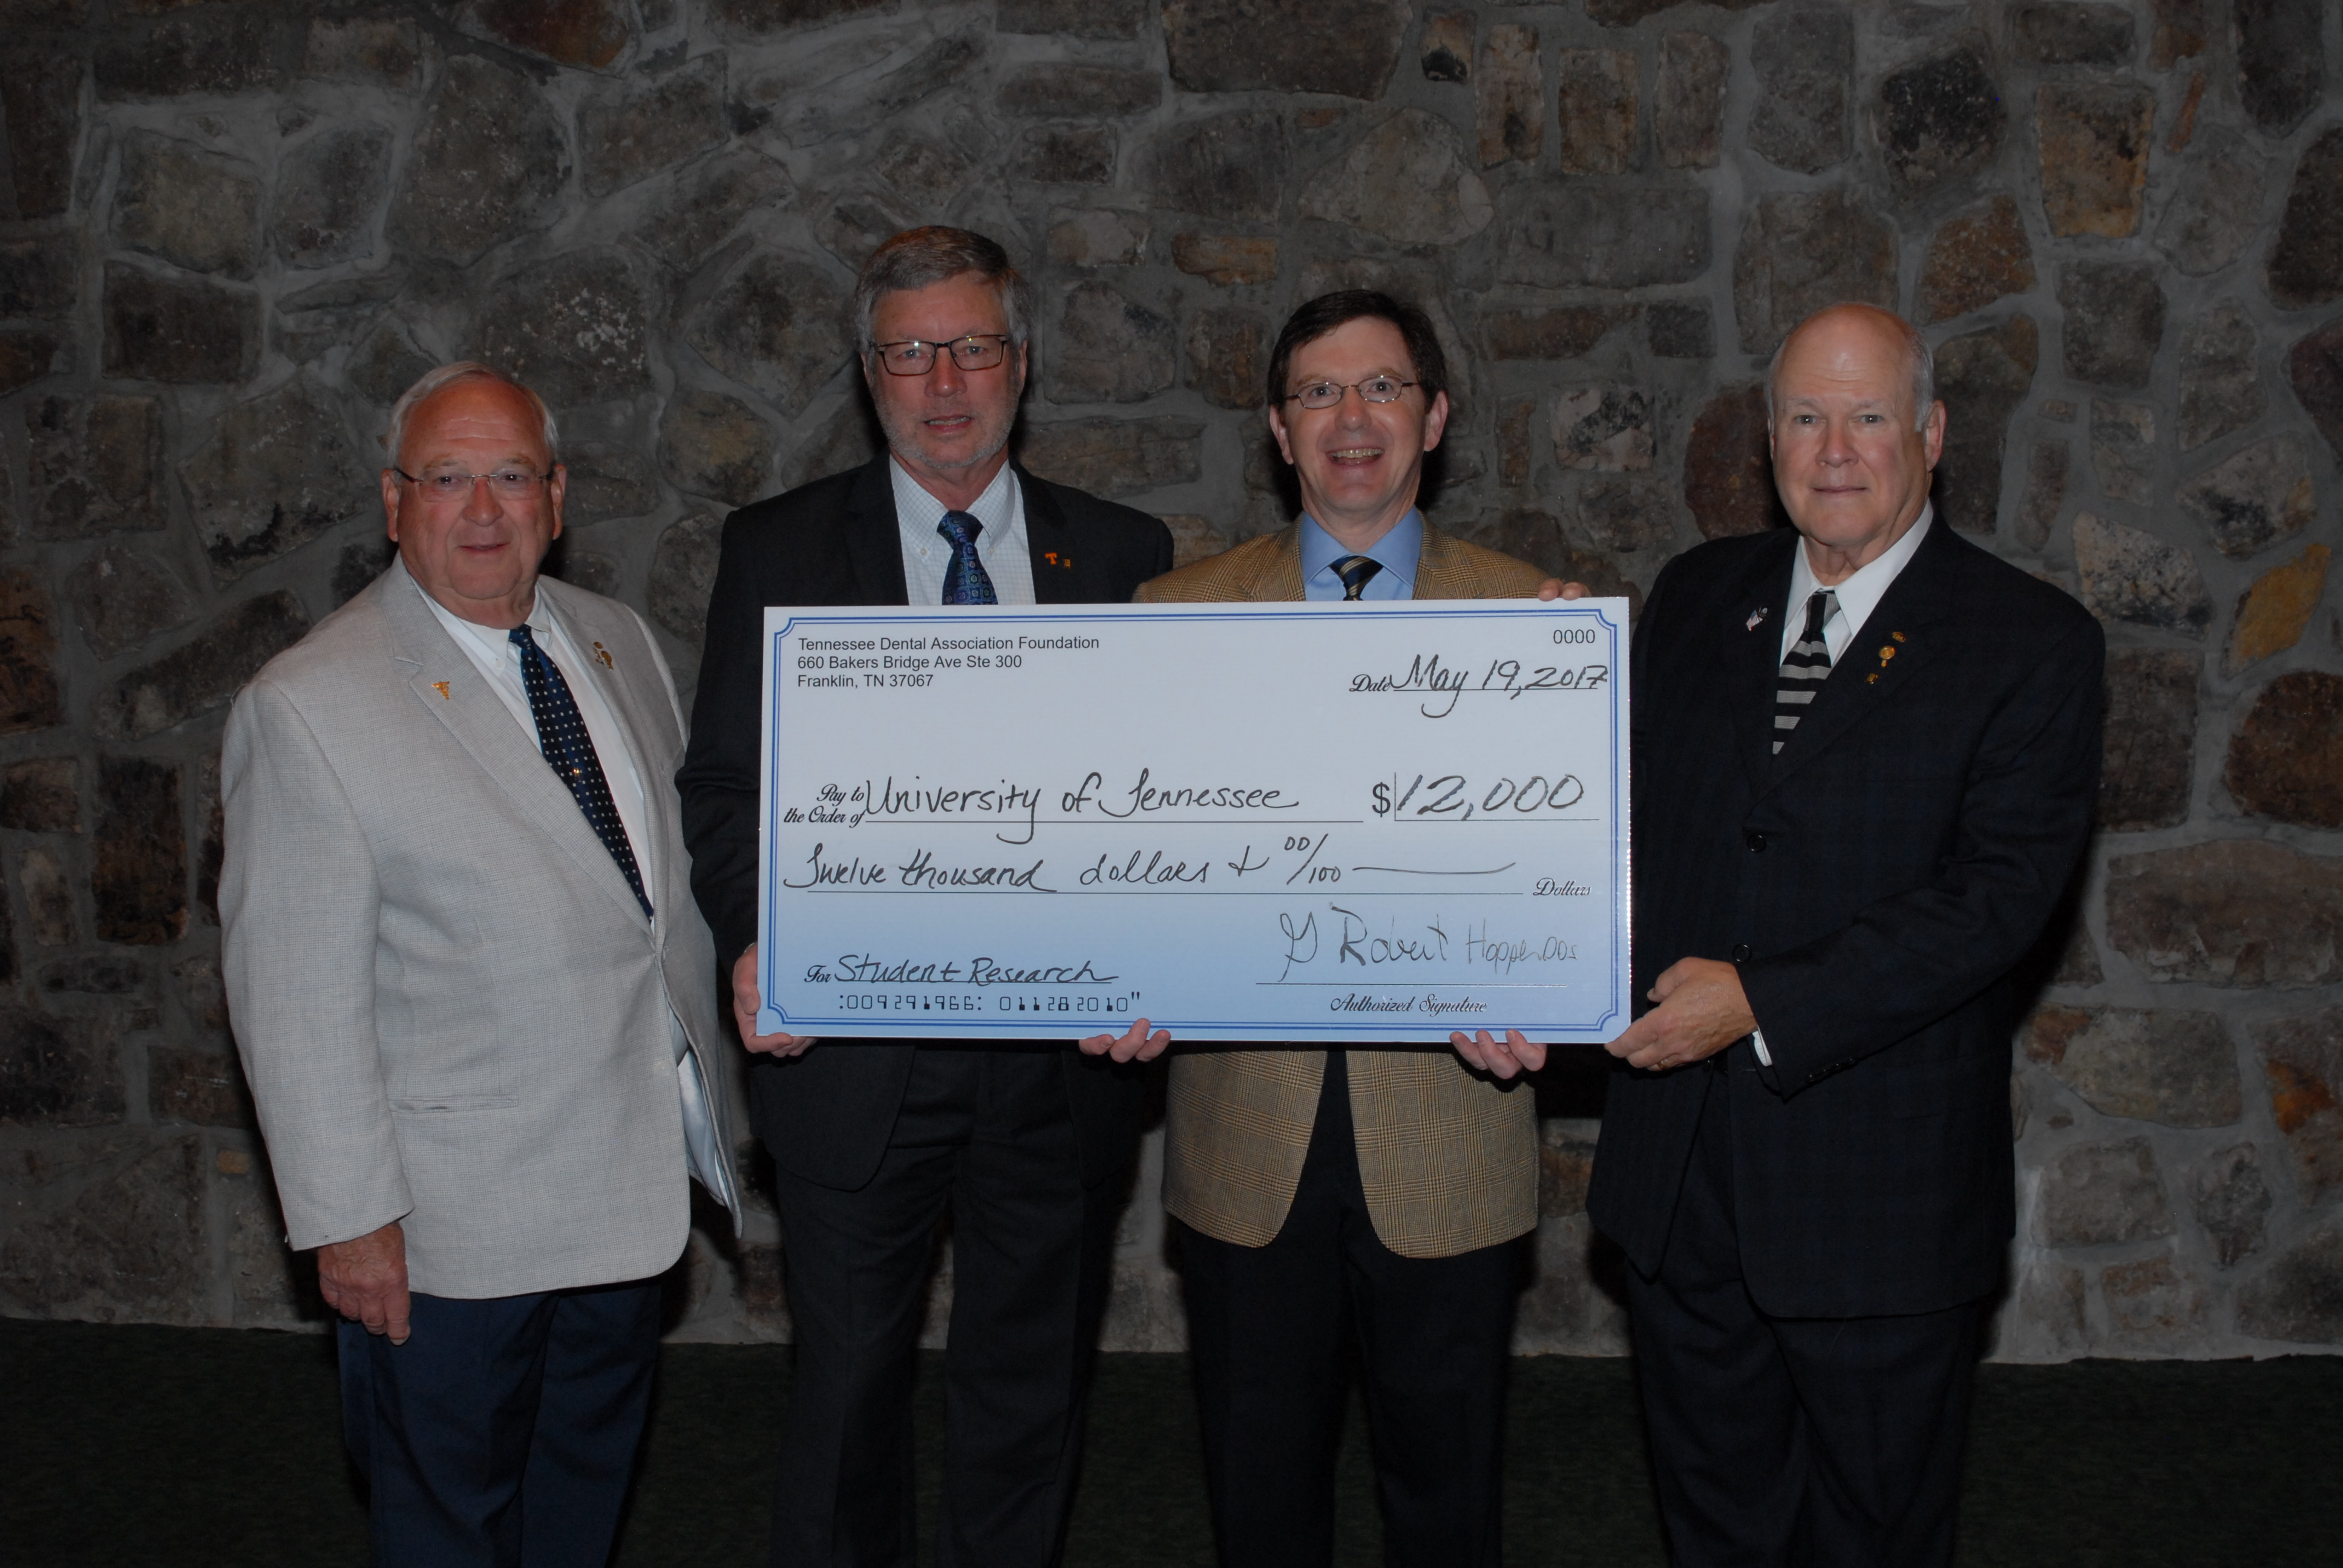 Foundation gives check for $12,000 to University of Tennessee